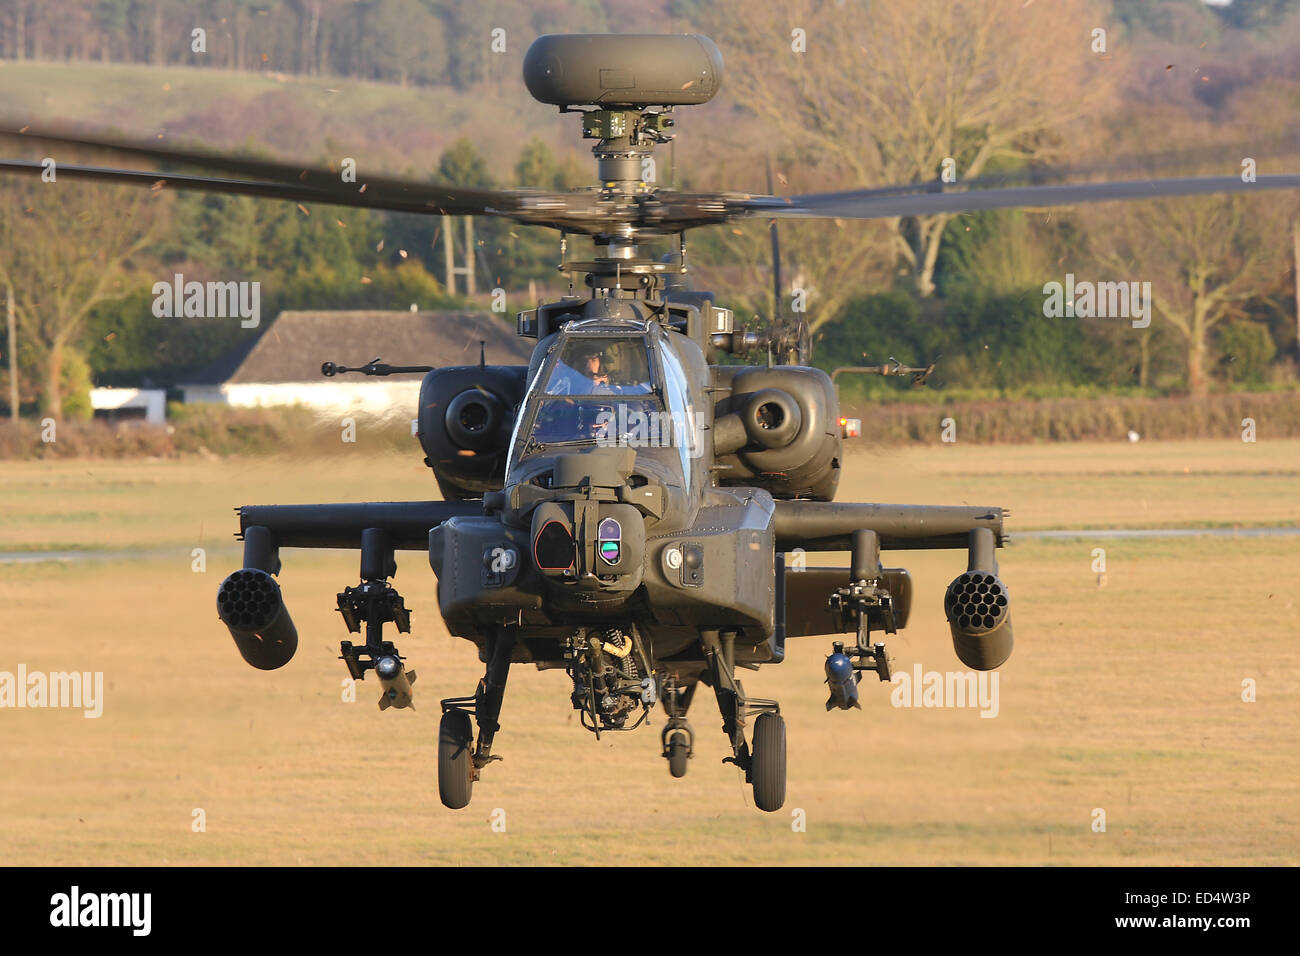 Menacing head on view of British Army Air Corps AAC Agusta Westland Ah-64D Apache attack helicopter in the hover - Stock Image